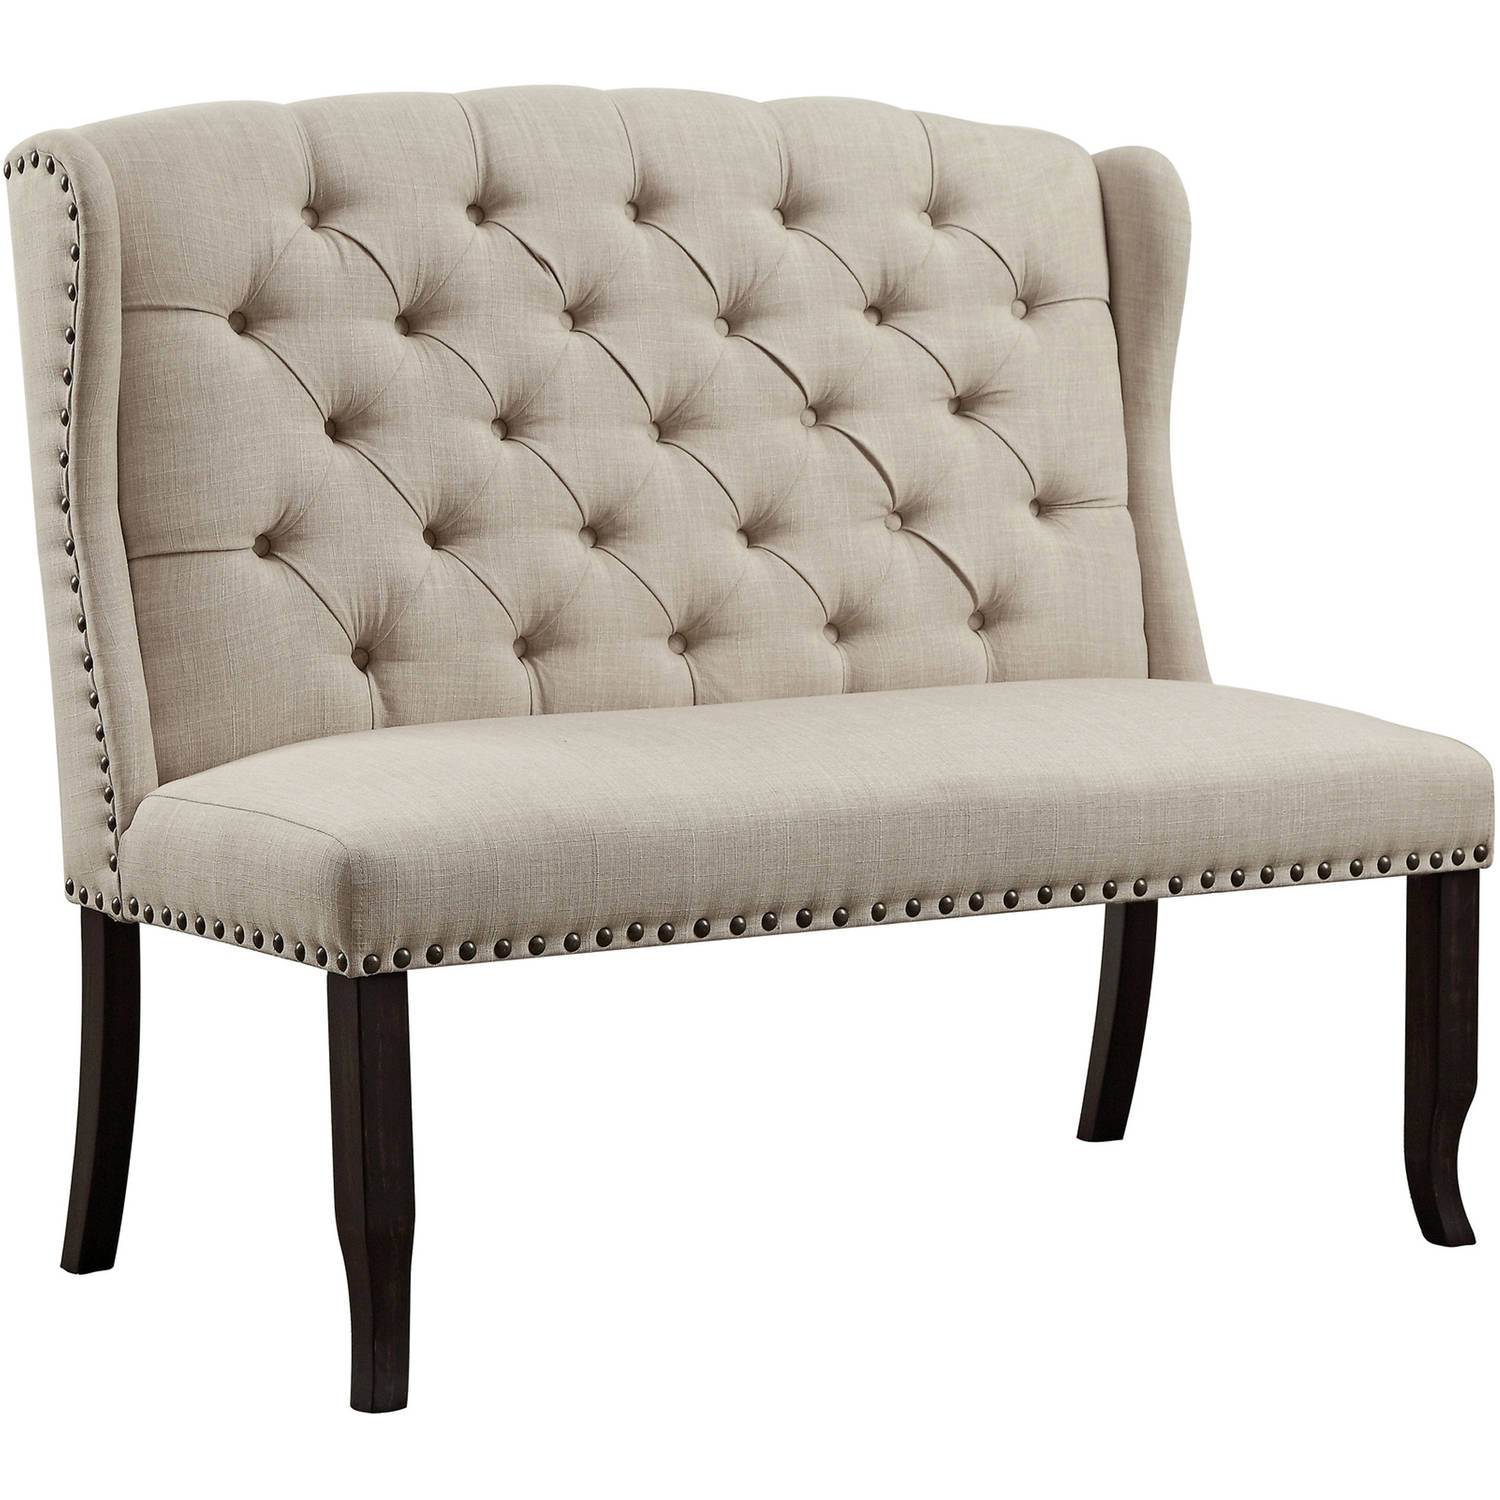 Furniture of America Isabella Tufted Wingback Dining Bench, Antique Black